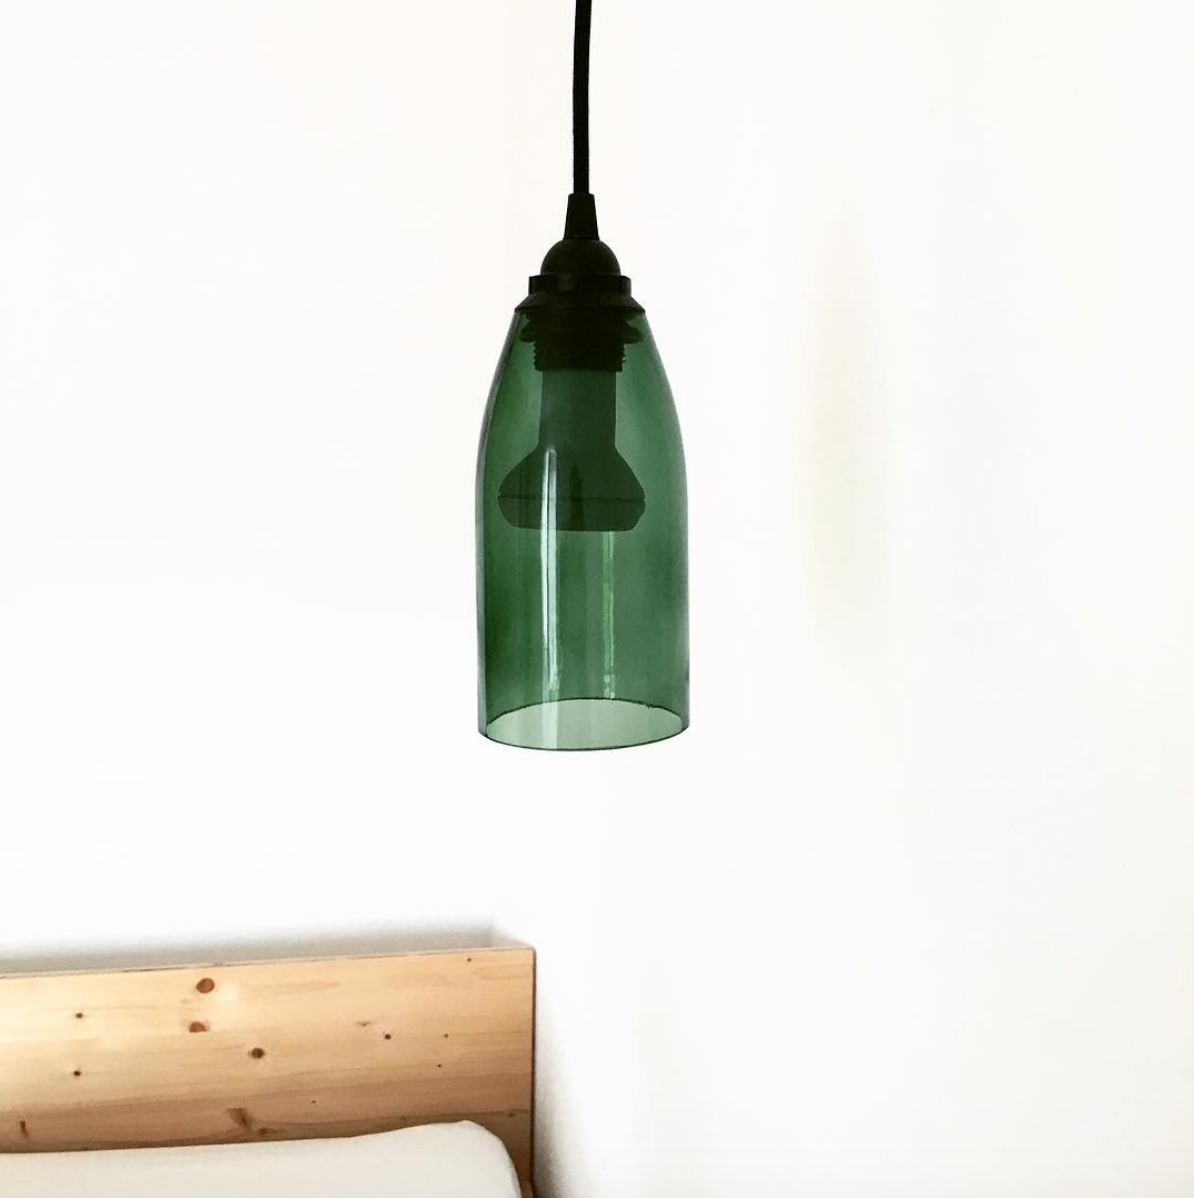 Wine bottle = beautiful lamp! 🍷 #moosham #design #lamp #bavaria #architecture #holiday #travel #DIY